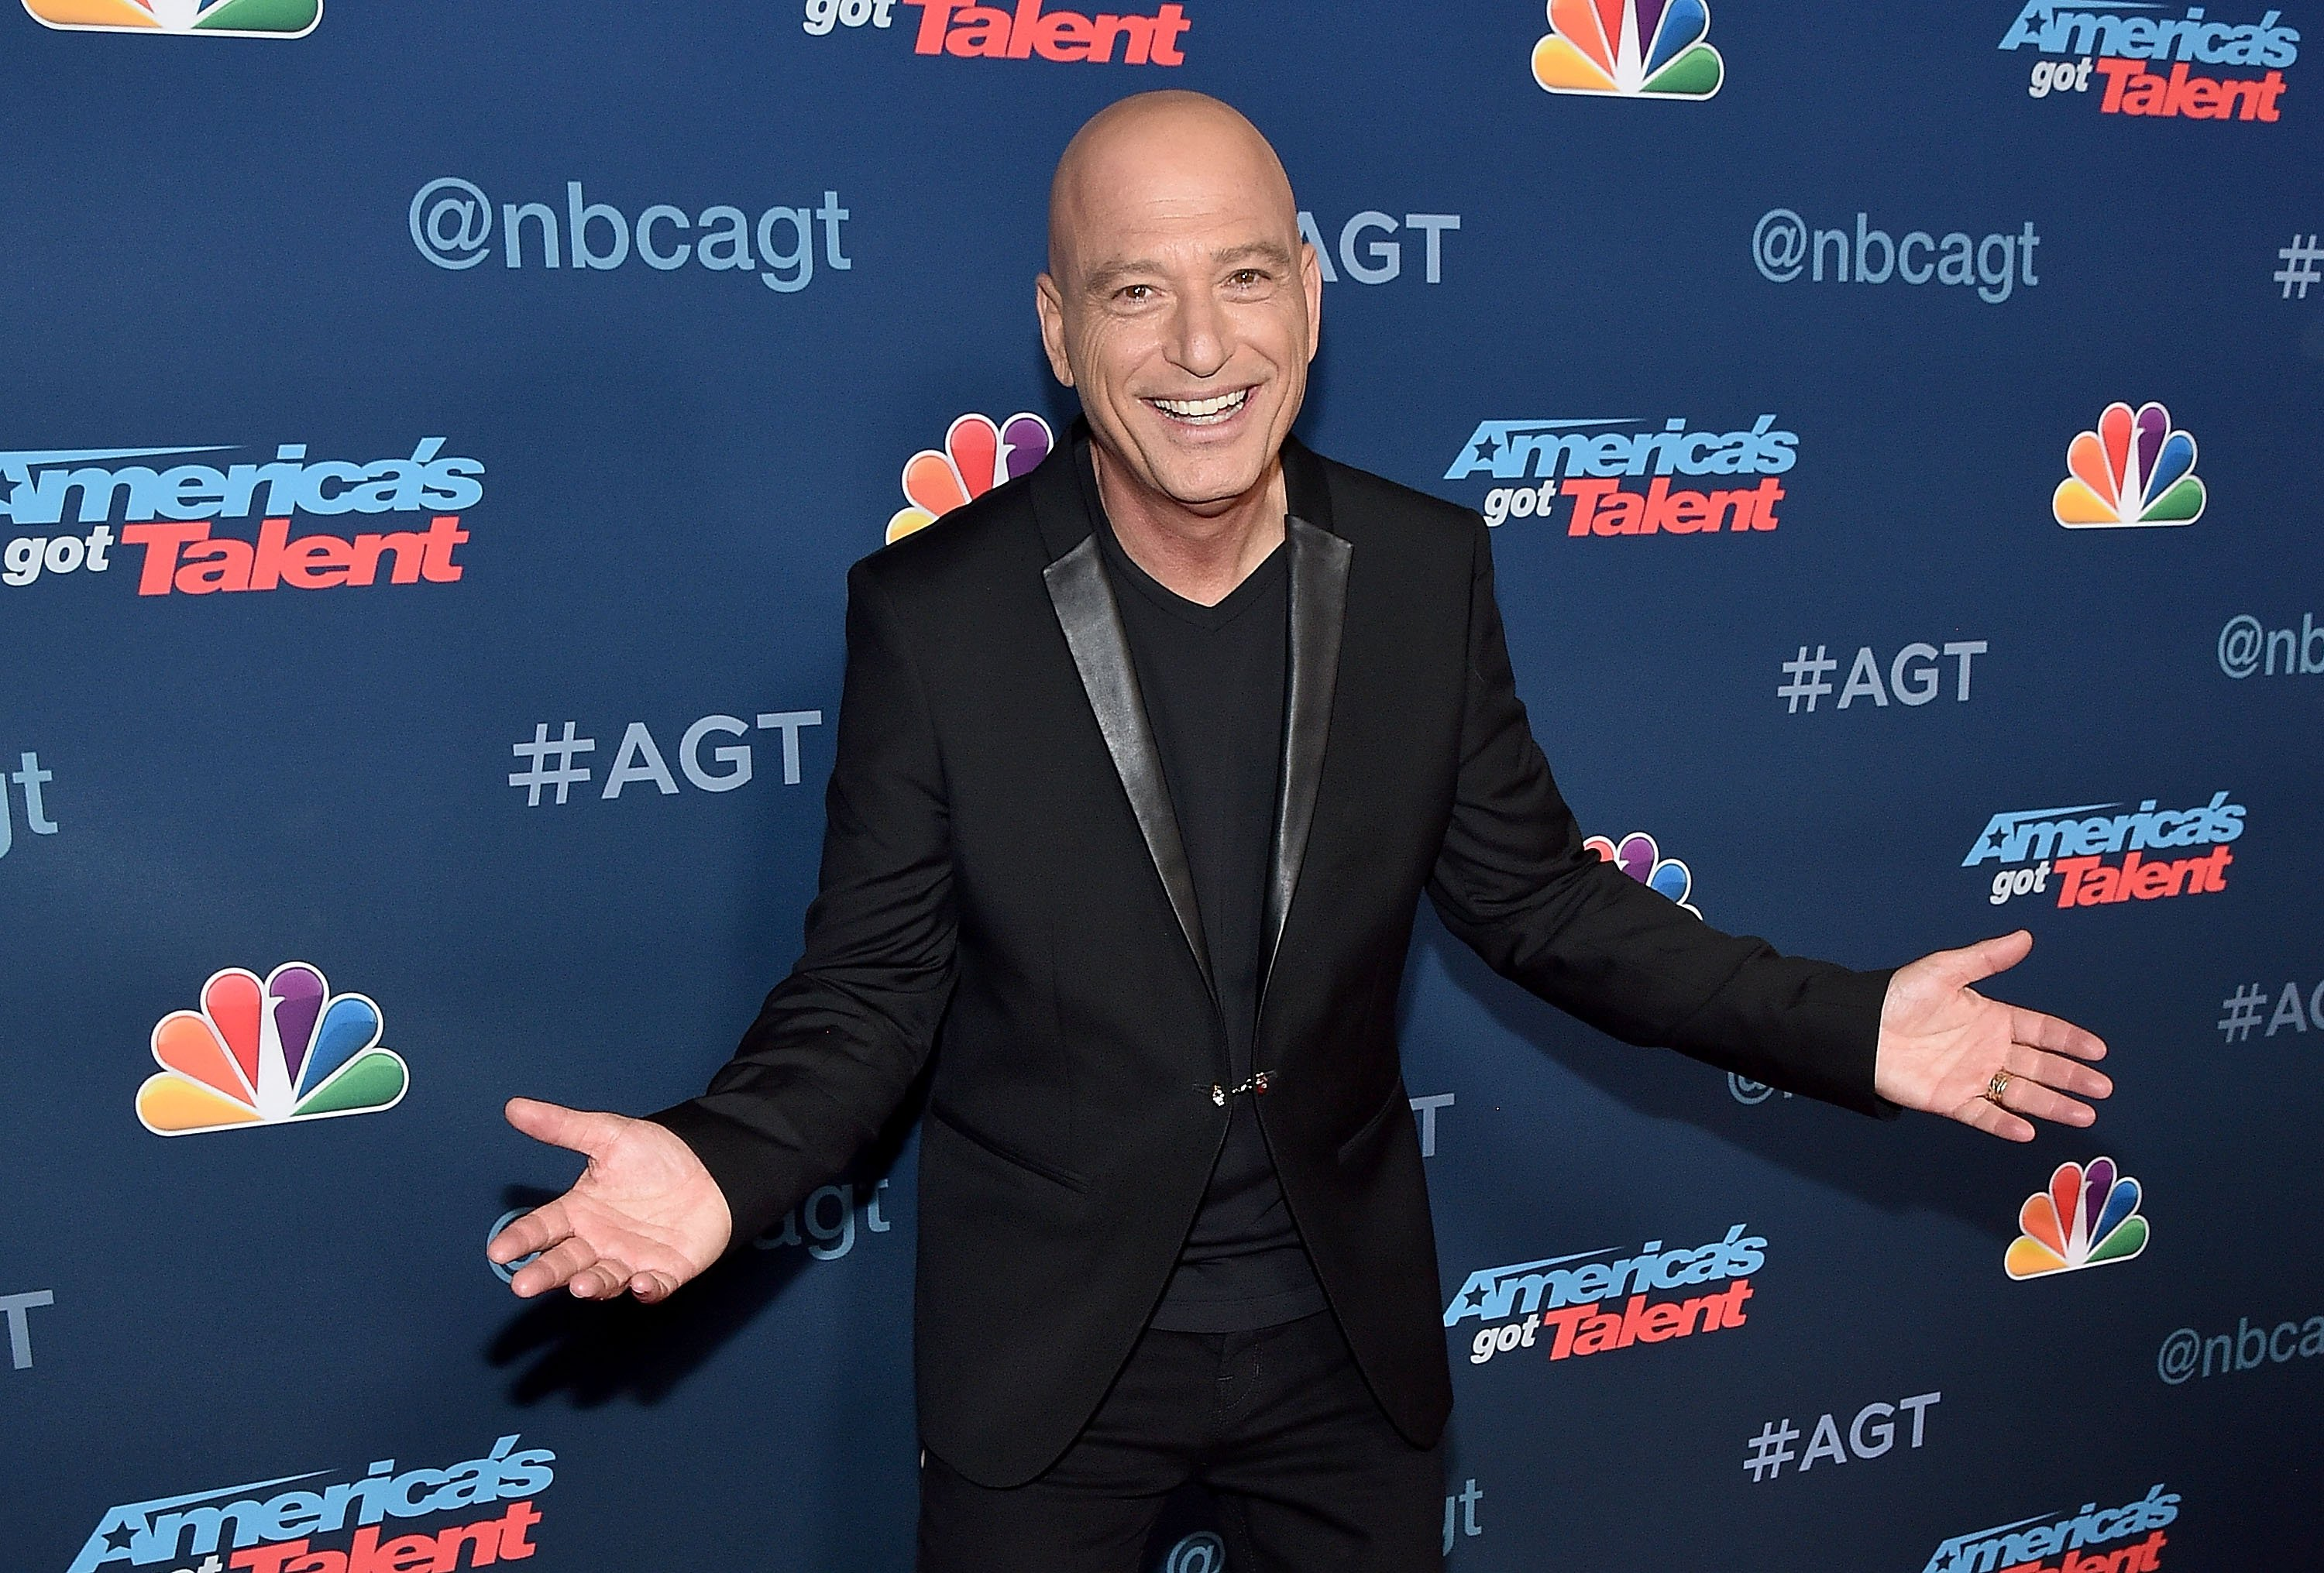 Howie Mandel on August 23, 2016 in Hollywood, California | Photo: Getty Images